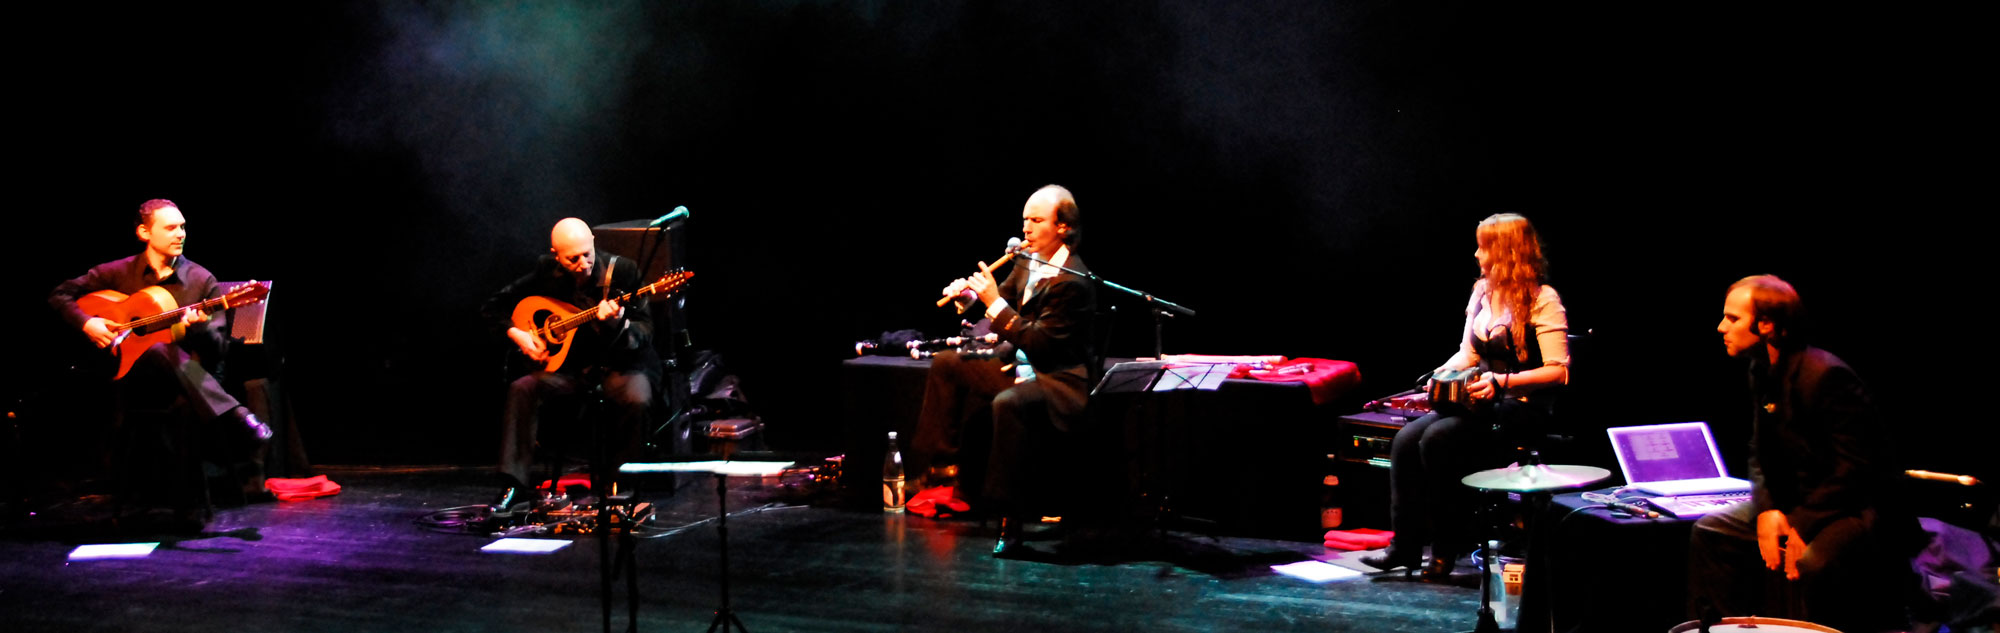 Carlos Núñez and Band